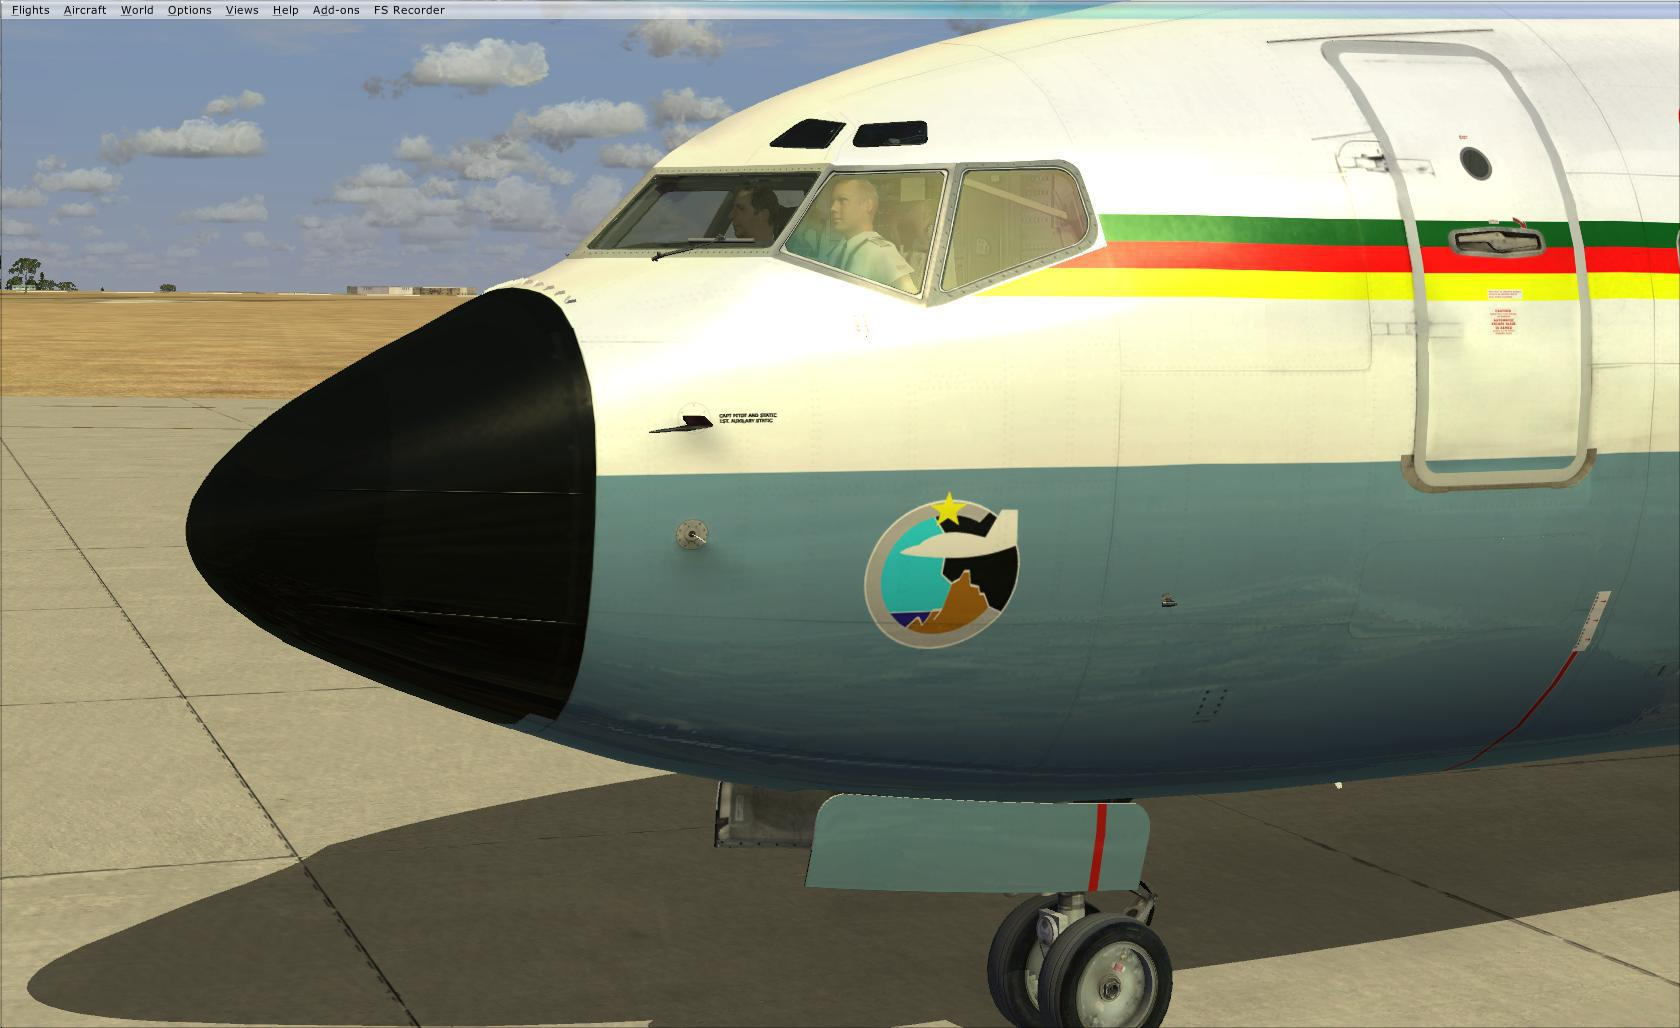 738 ngx cameroon air force 207425fsx2013071309430749